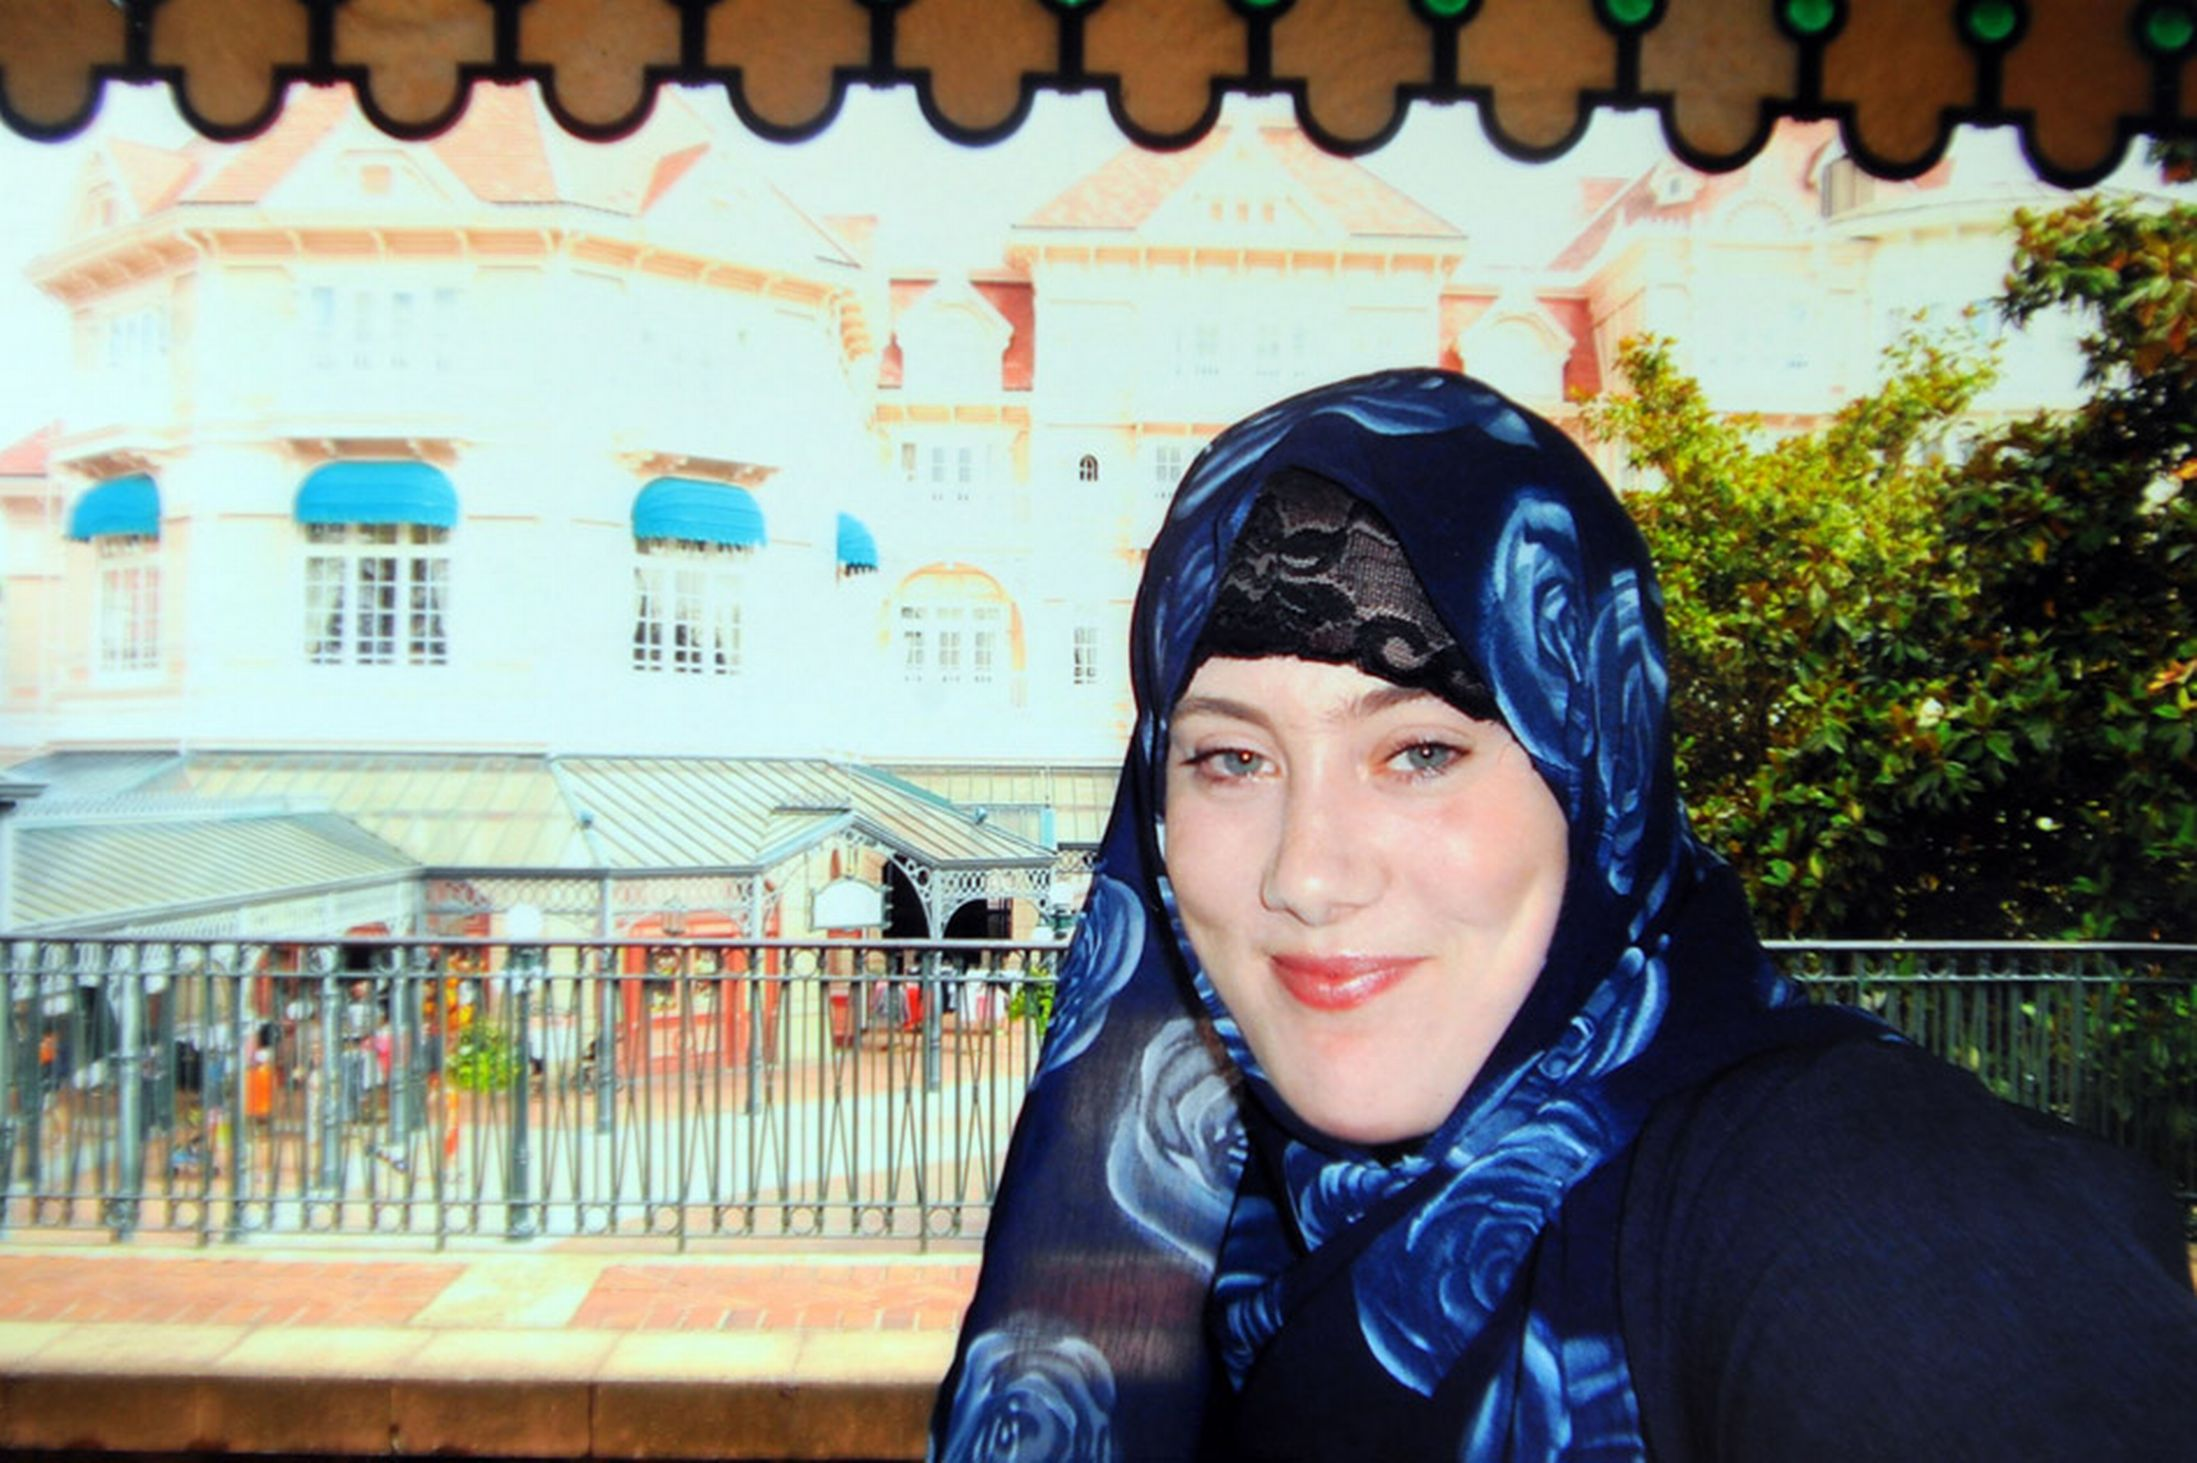 Samantha Lewthwaite, Briton suspected of terrorist activities, including the massacre at the Westgate shopping centre in Kenya.